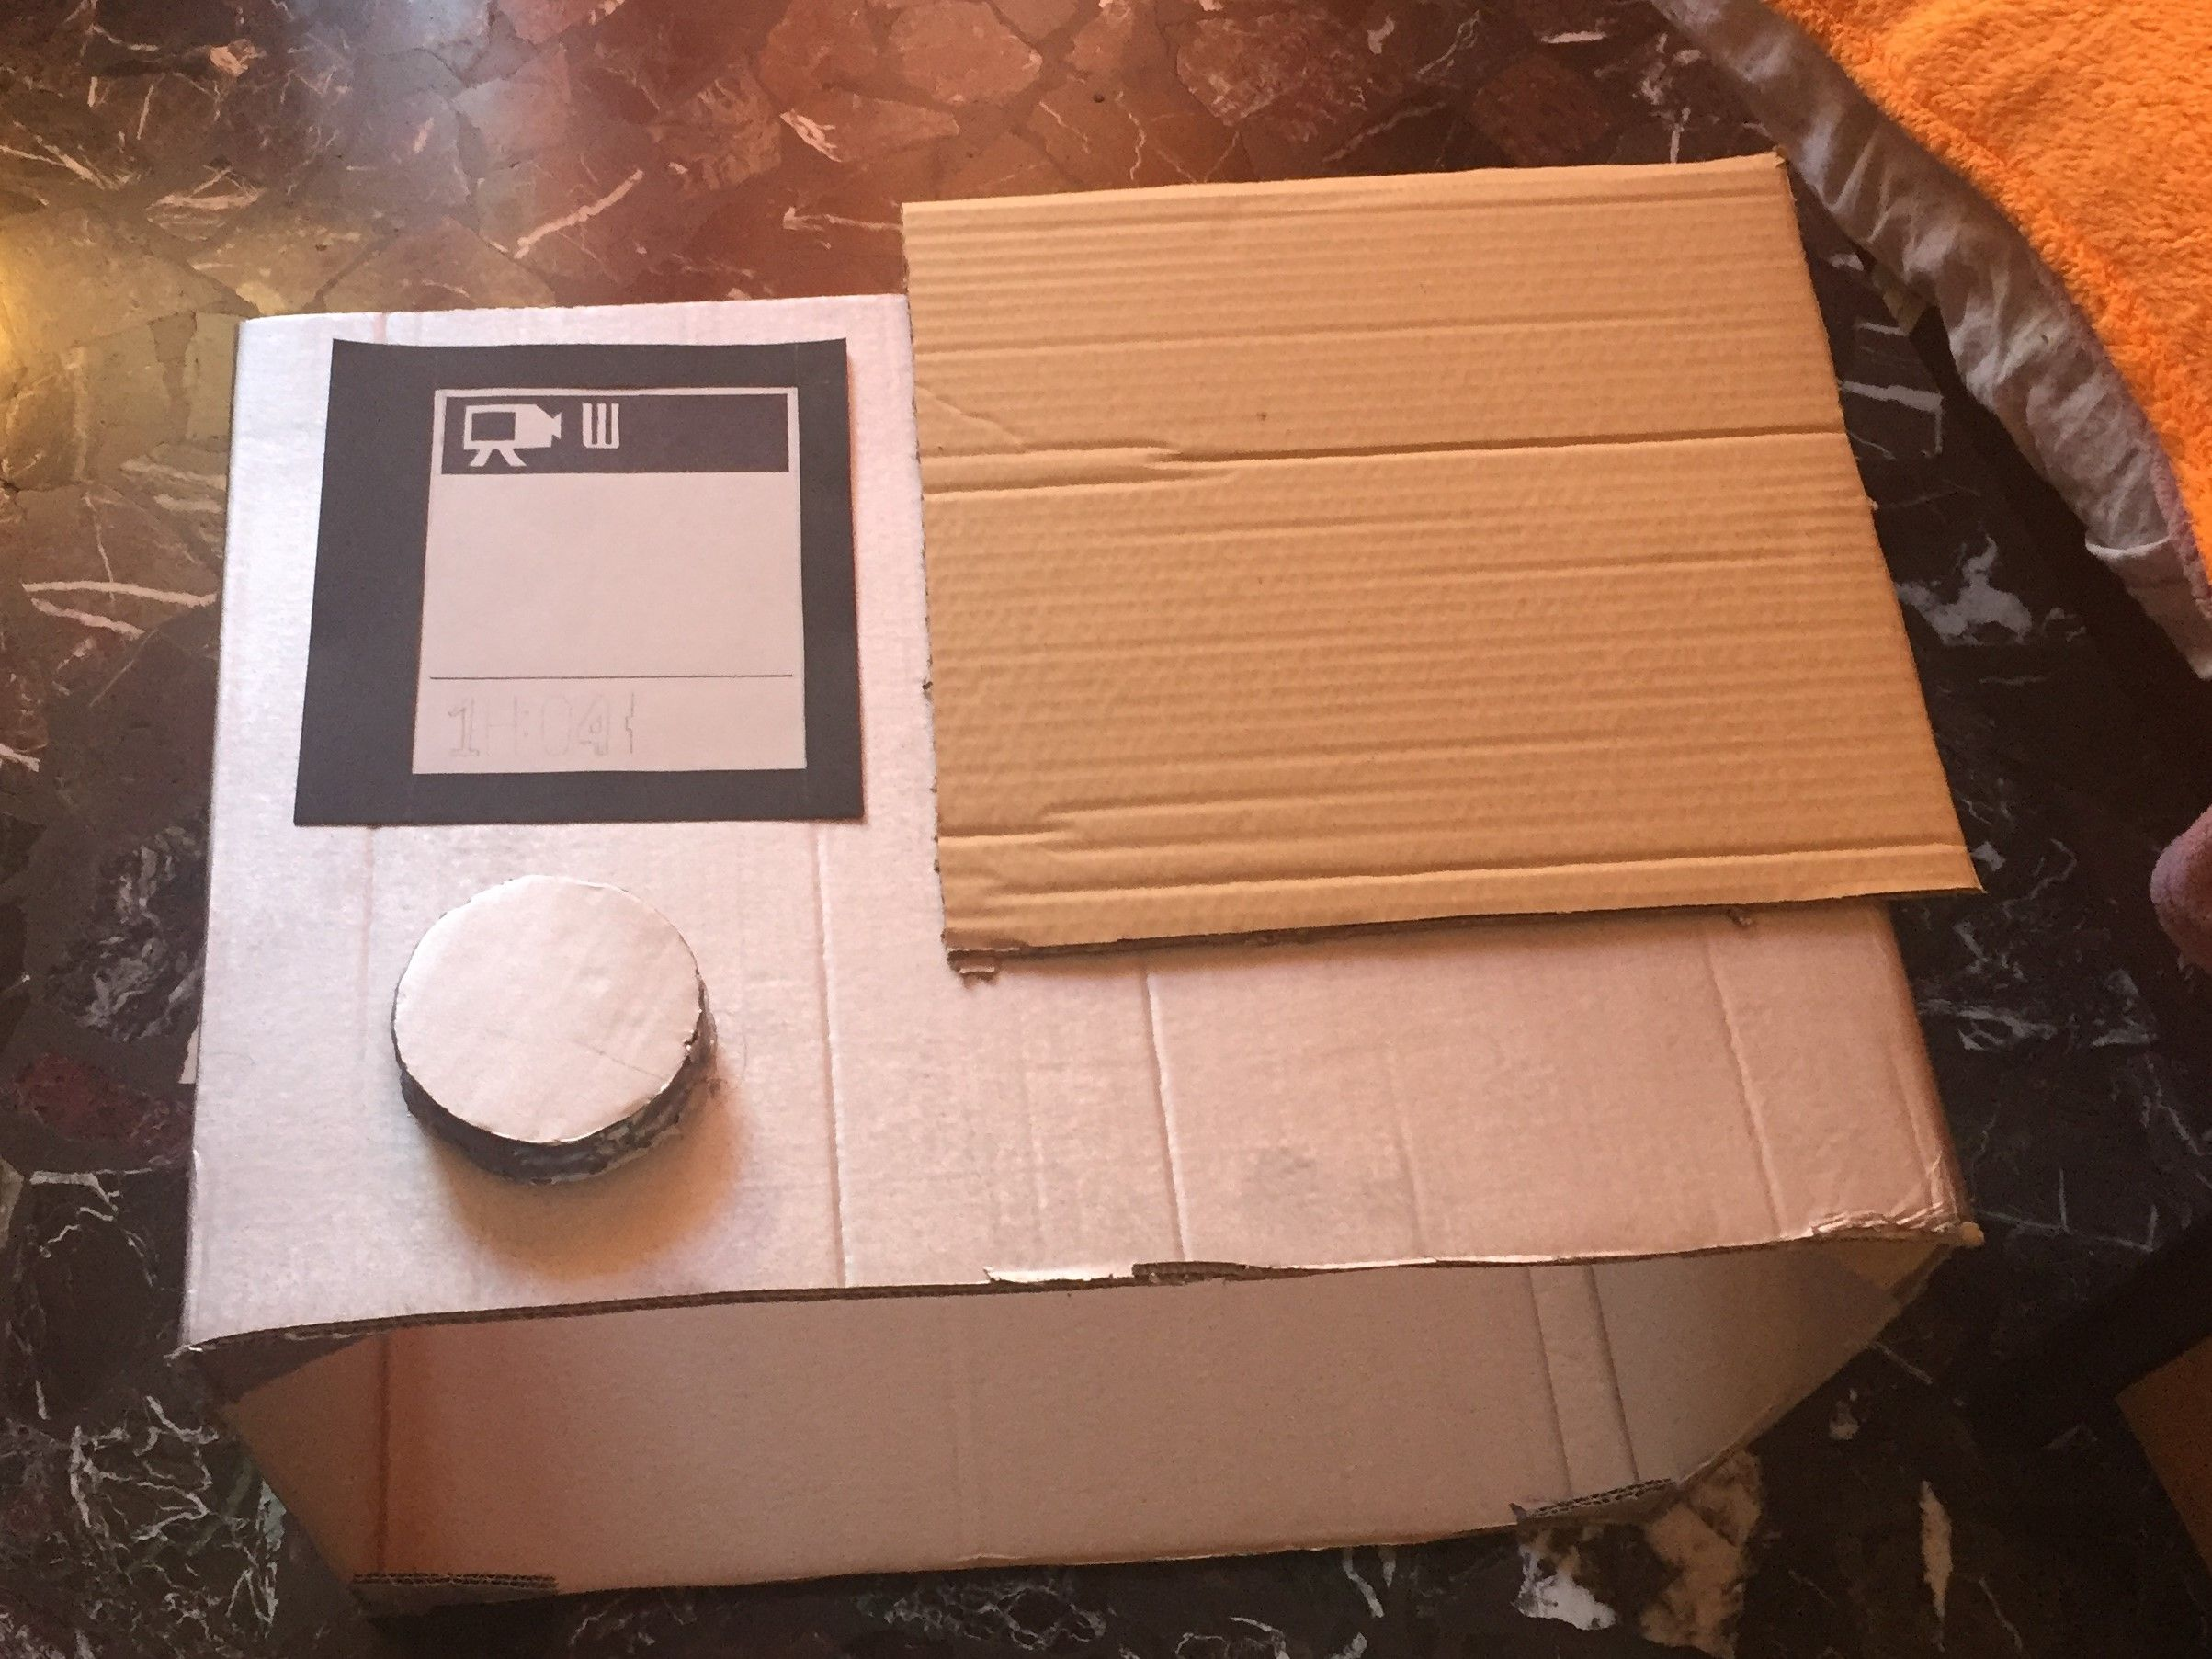 Step 3) Draw the classic display of the action camera on some different colors light cardboards.